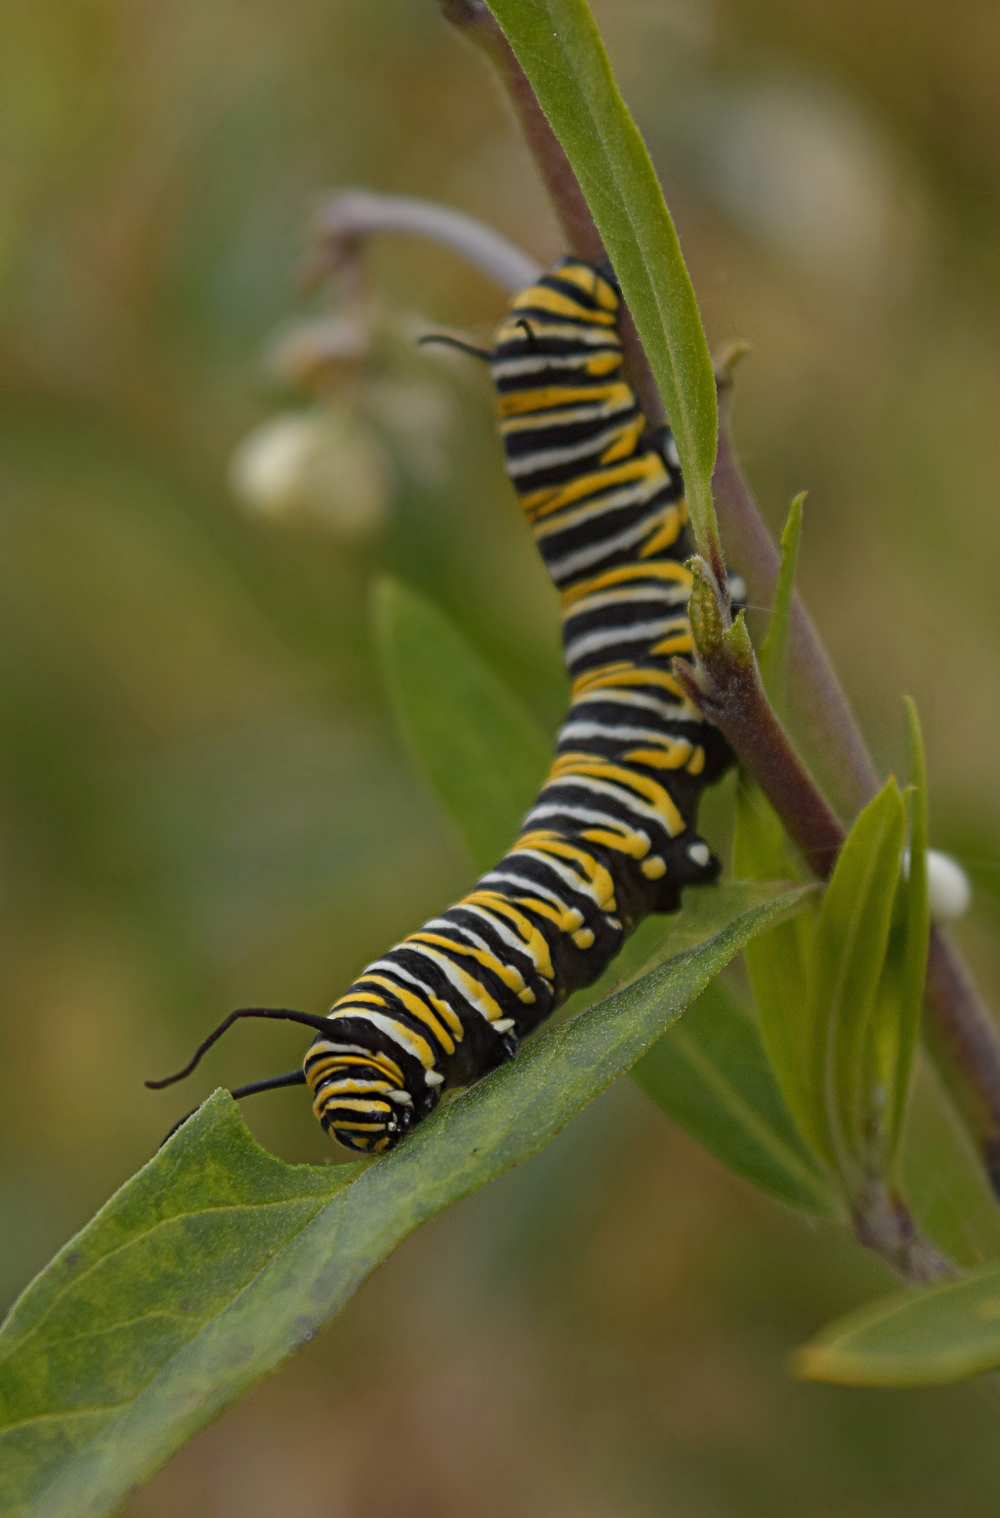 Fifth instar Monarch larvae | Yalakom